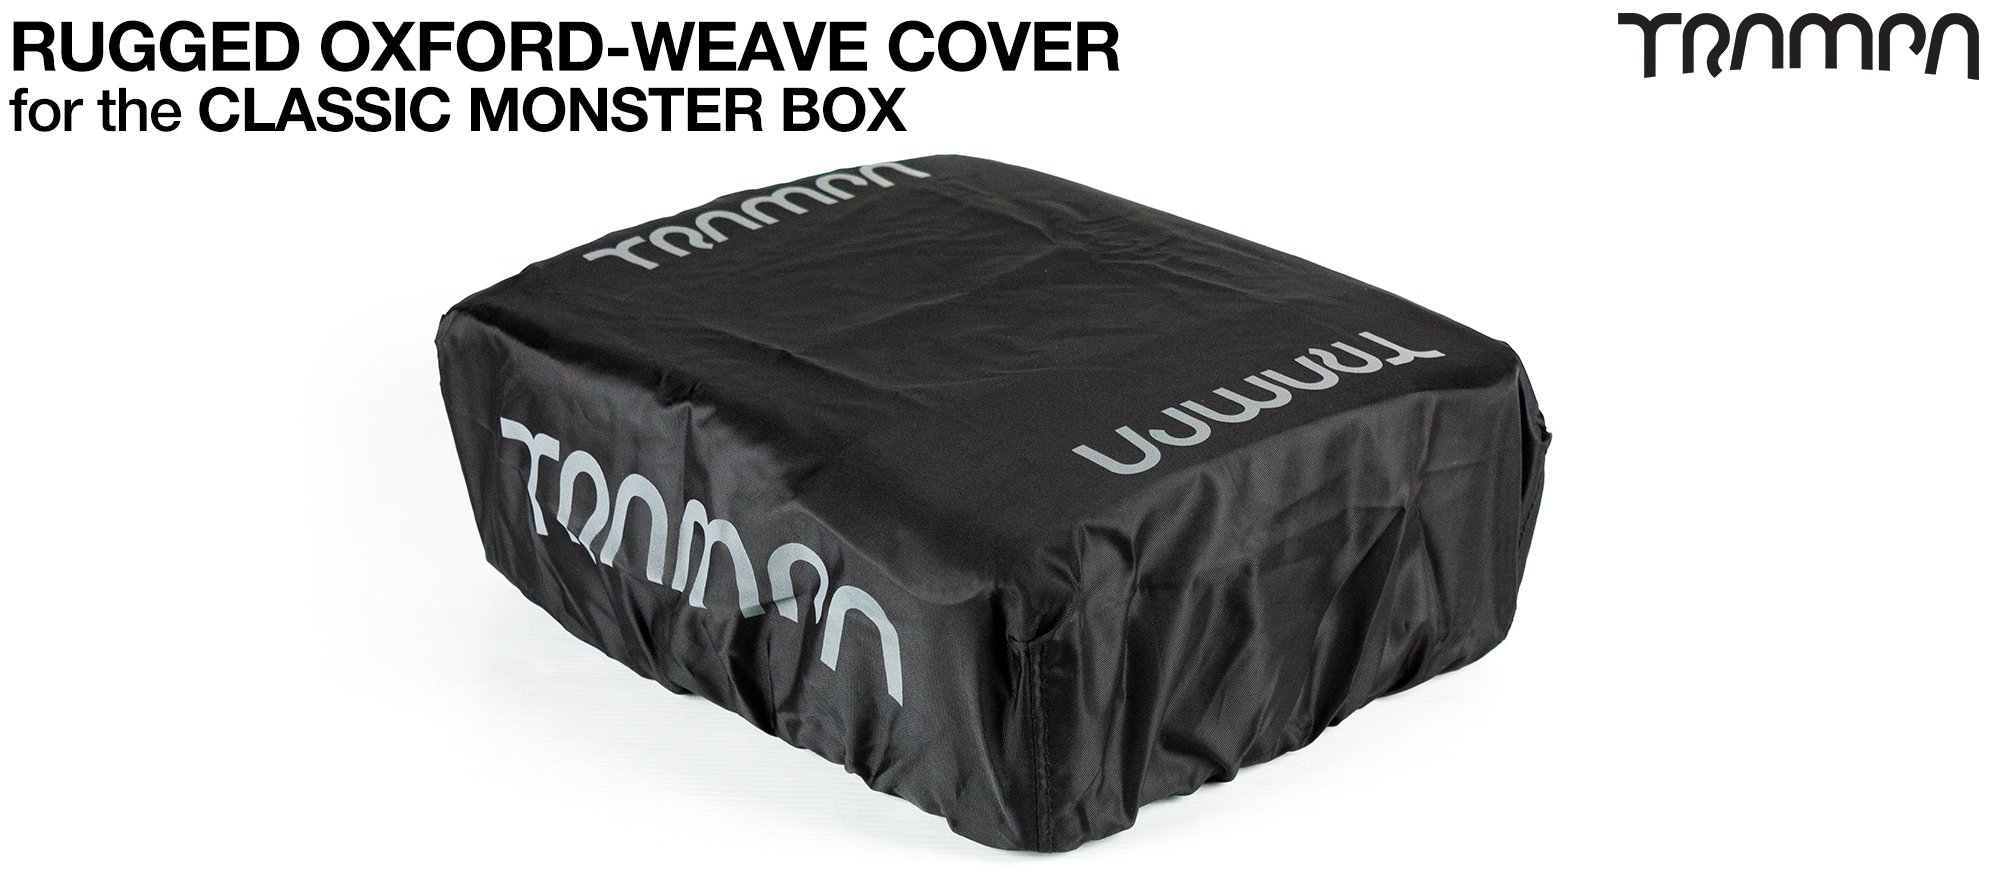 CLASSIC Monster Box - Rugged OXFORD Weave Protective Cover